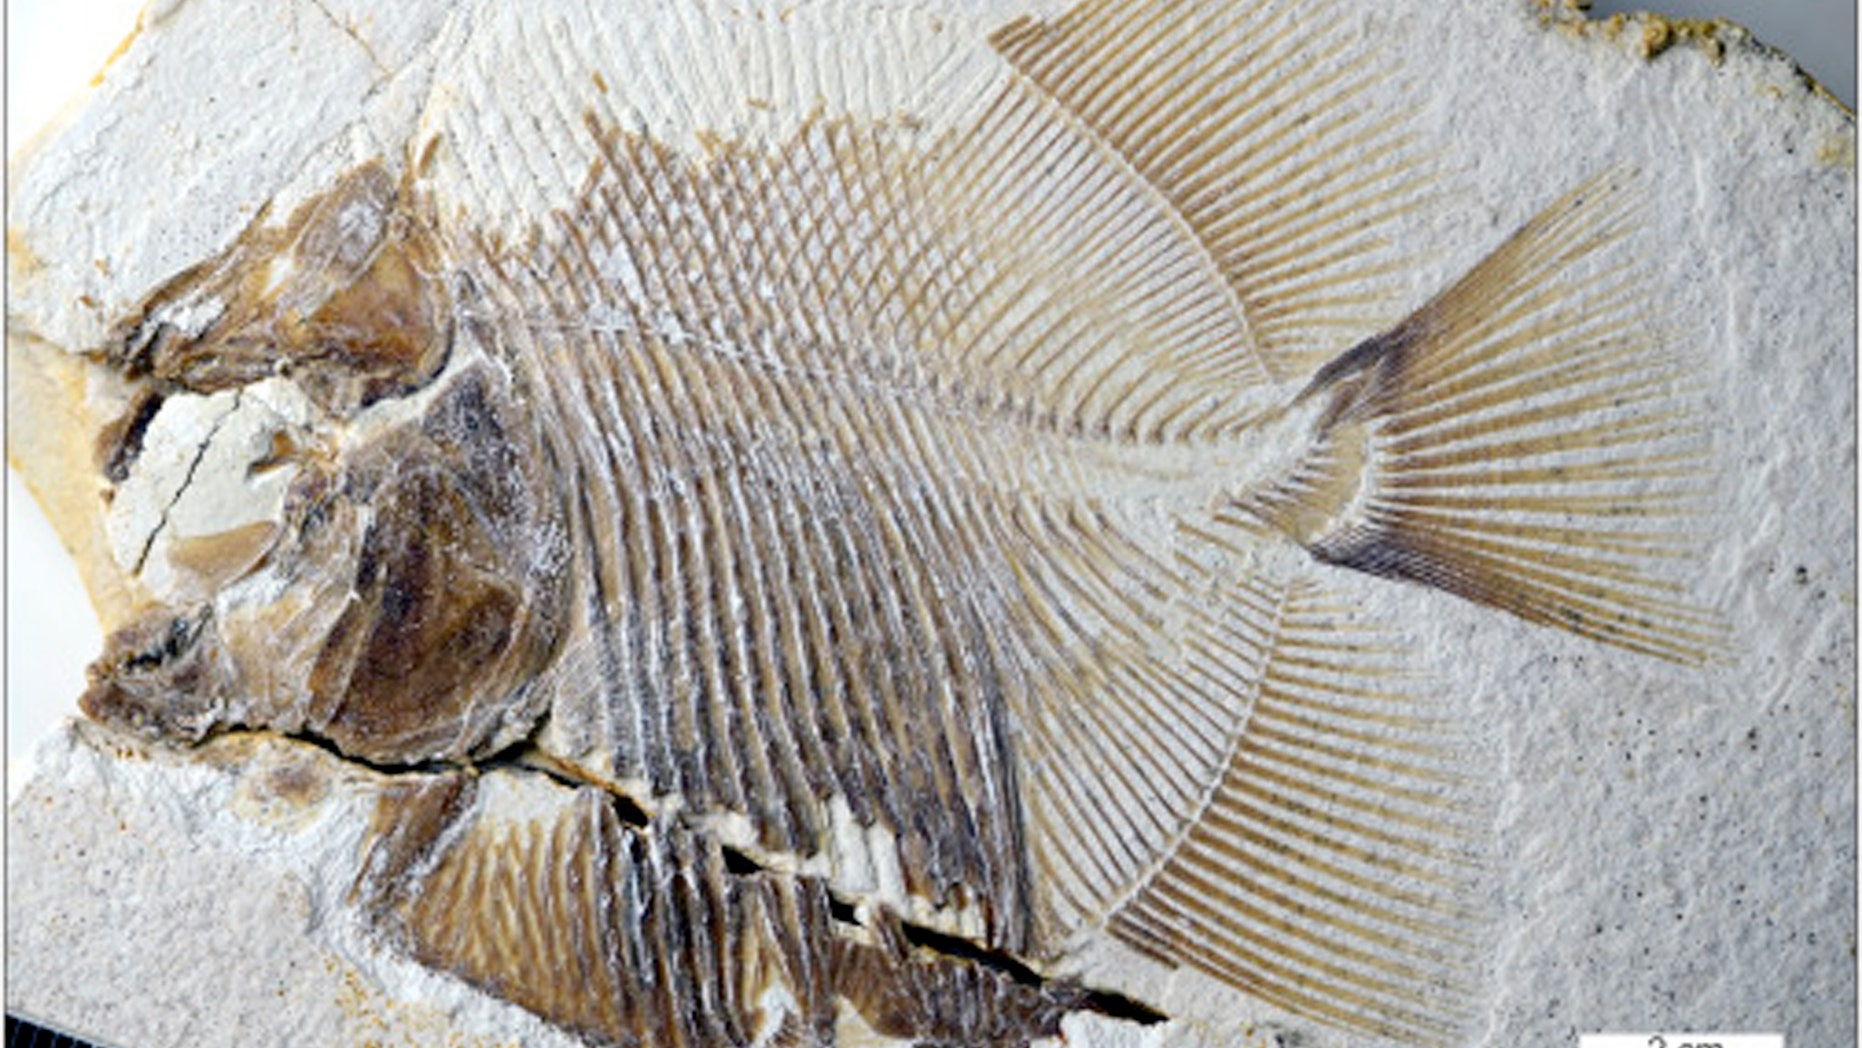 Scientists find a 150-million-year old piranha-like creature